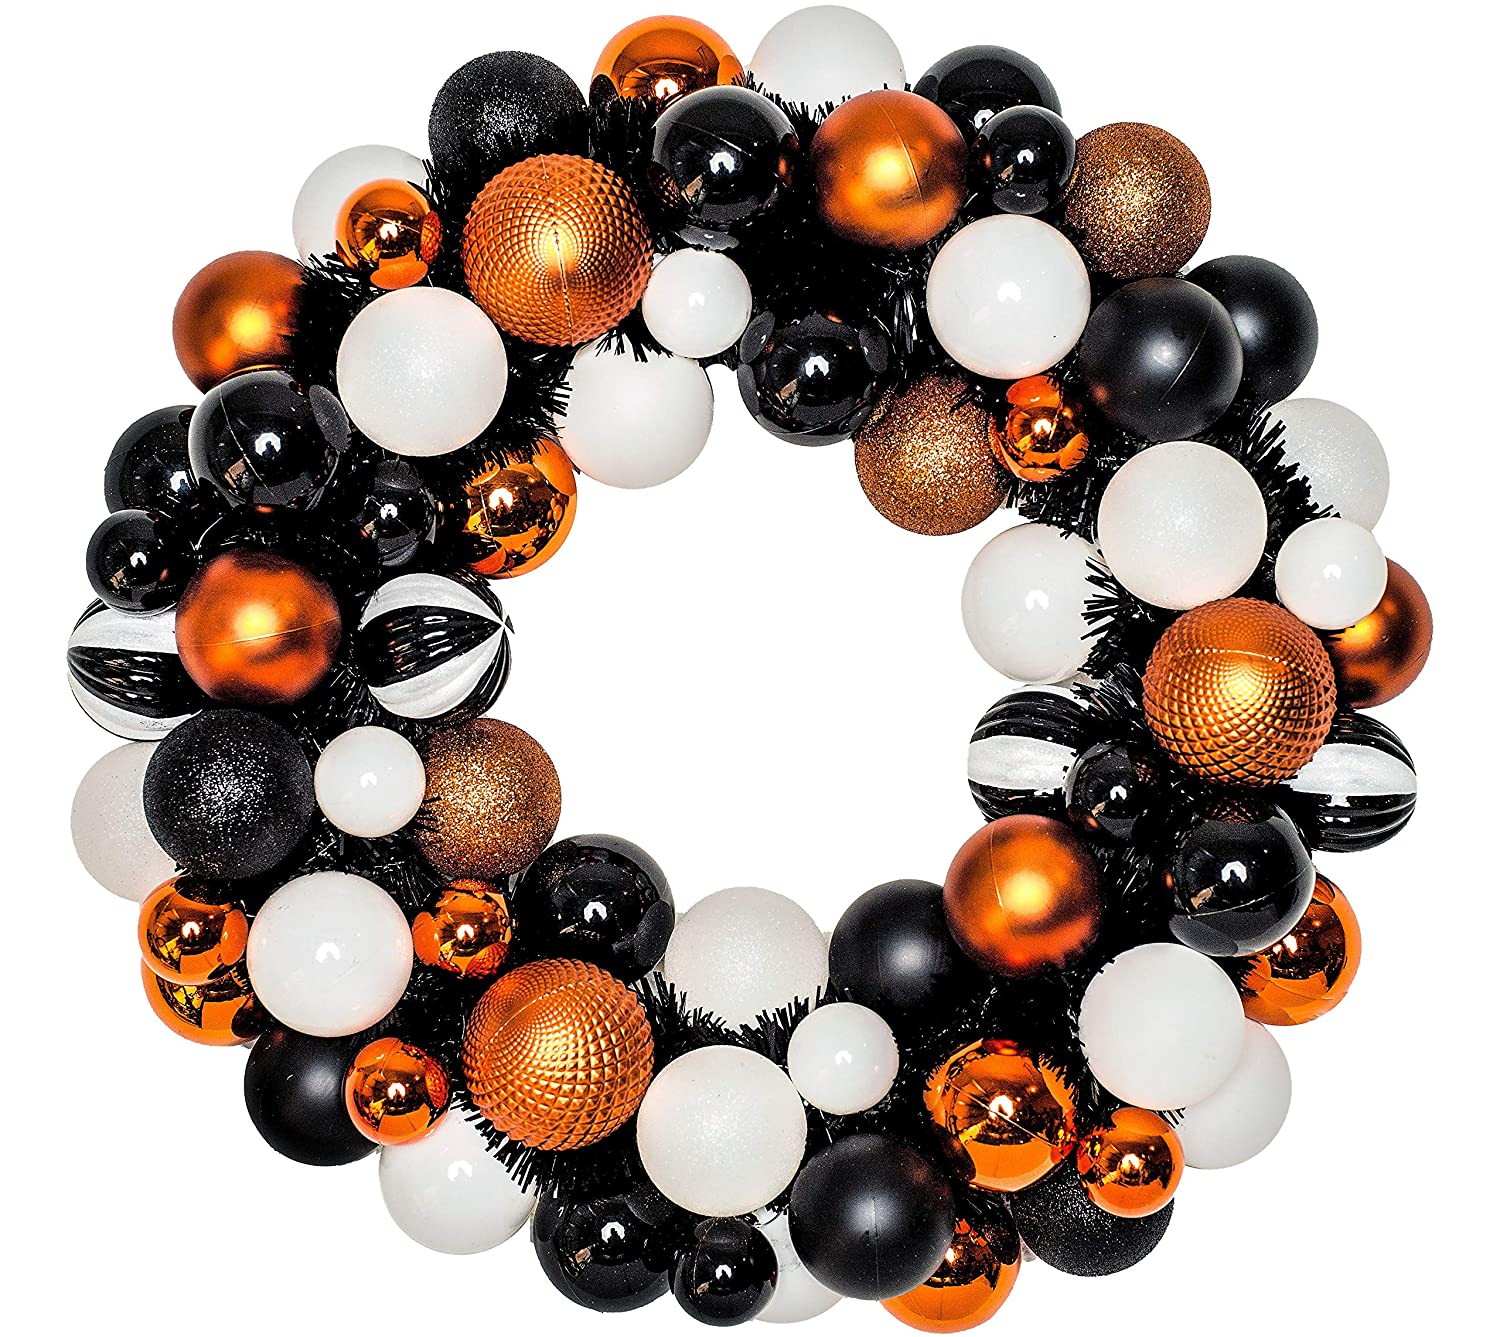 Halloween Door Decoration Glitter Halloween Ornament Wreath 20 W by Specialty D/écor and Gifts